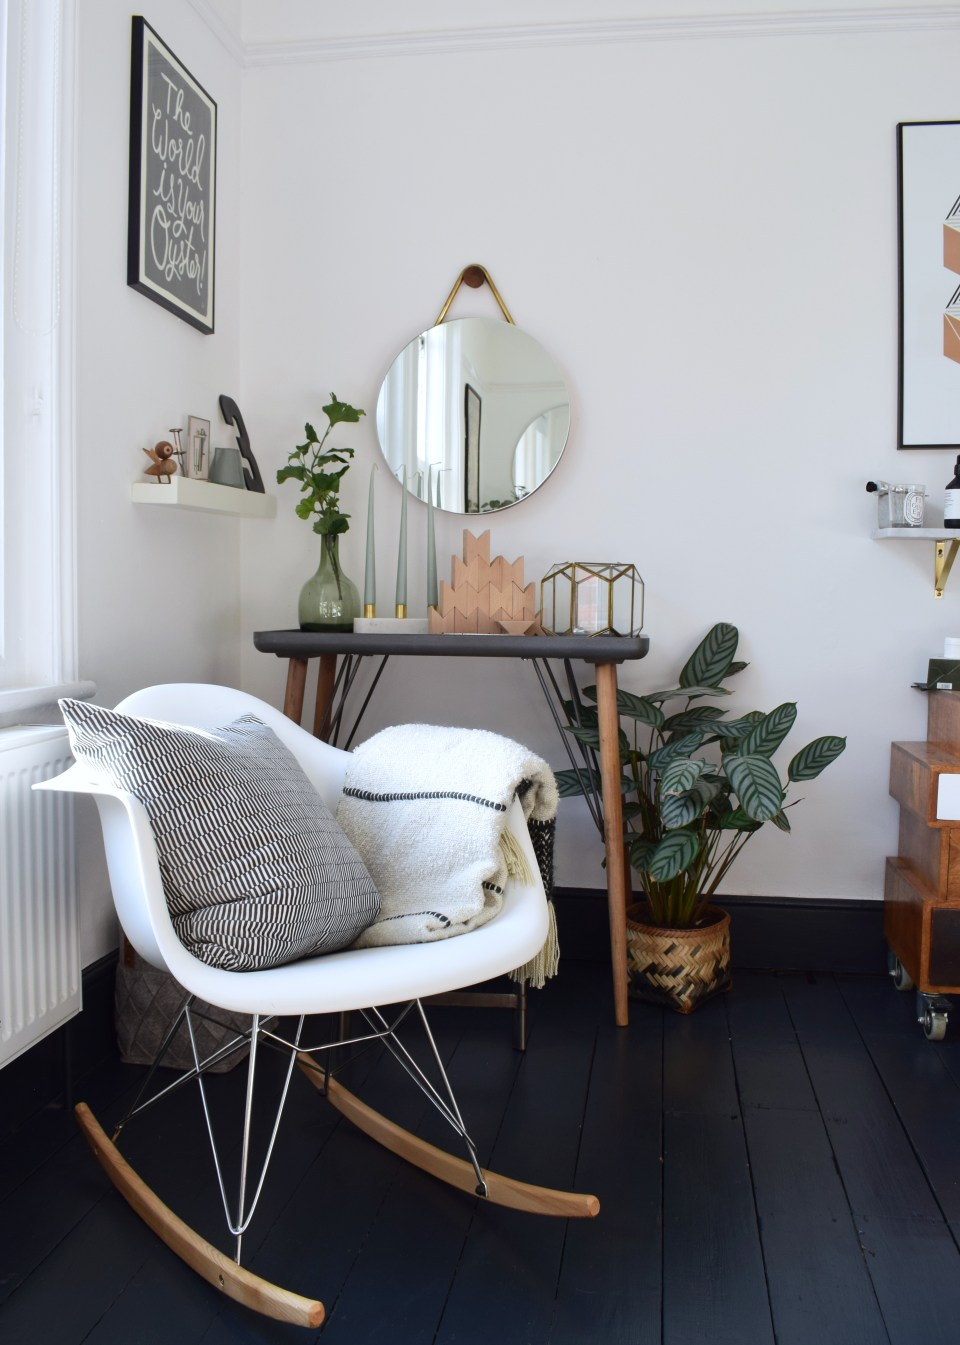 ikea faux plants foliage scandinavian bedroom interior styling ideas and inspiration